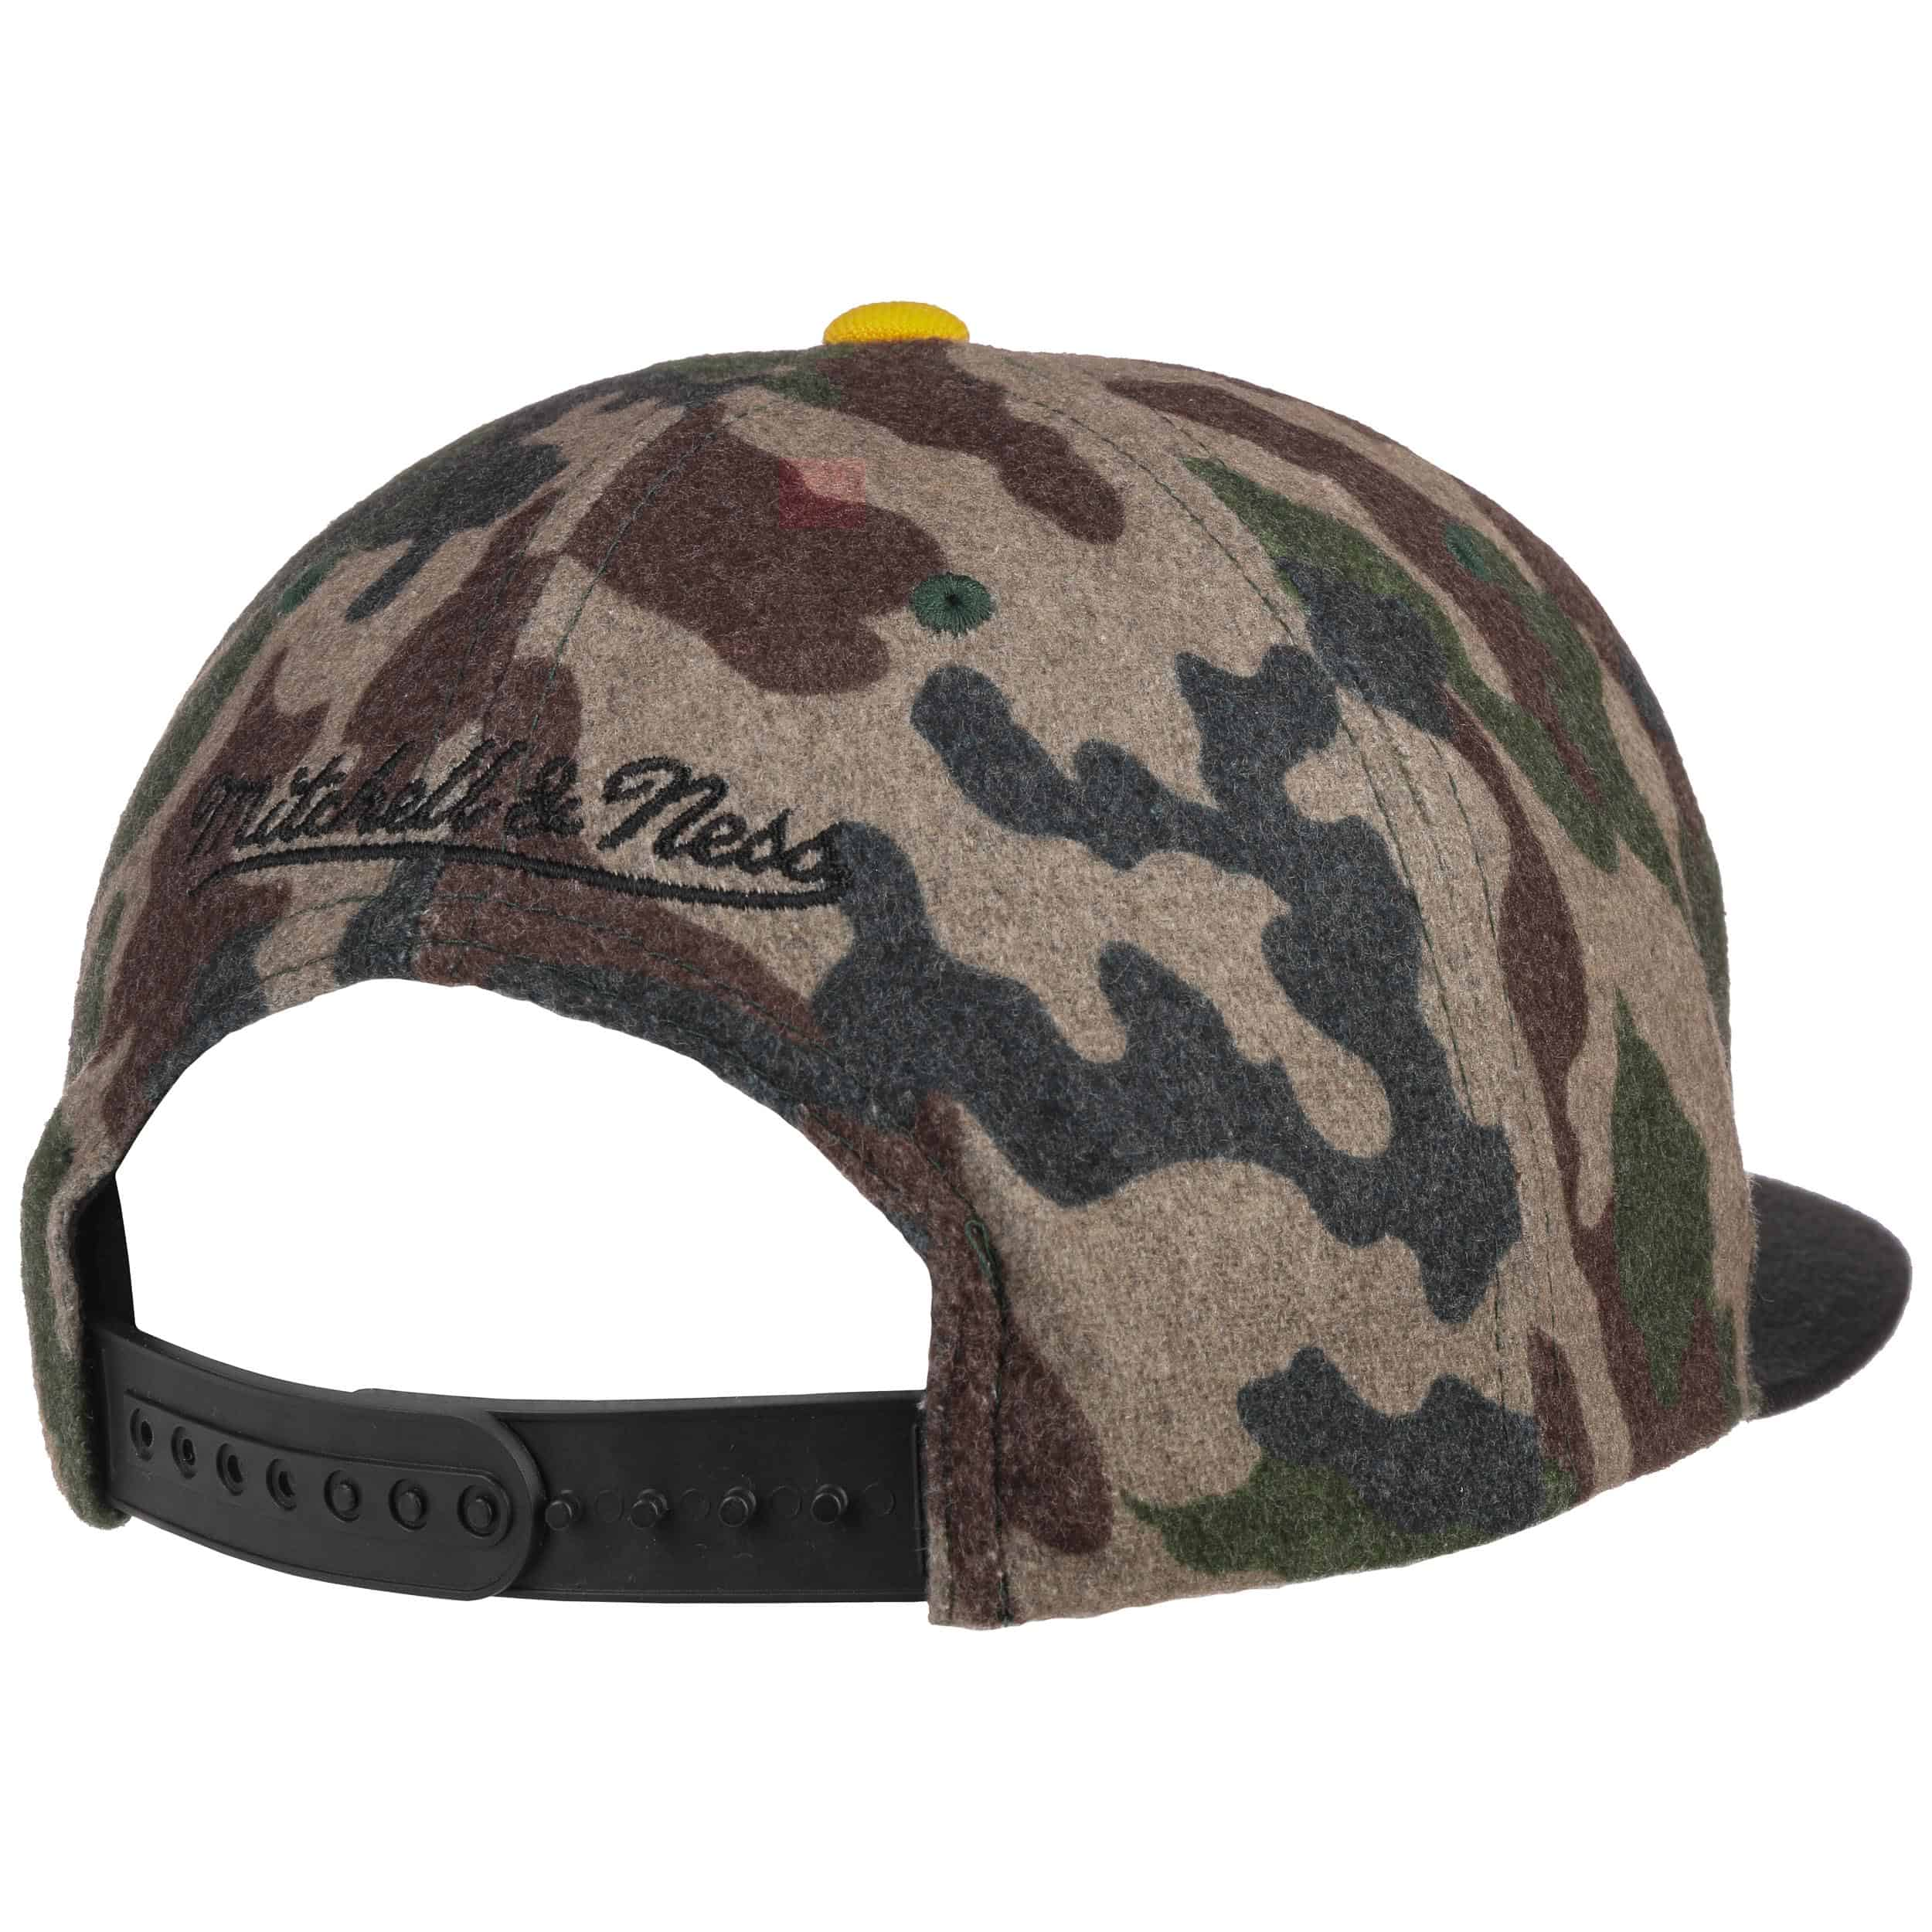 ... HWC Camo Flannel Lakers Cap by Mitchell   Ness - camouflage 3 ... 940b26d2729